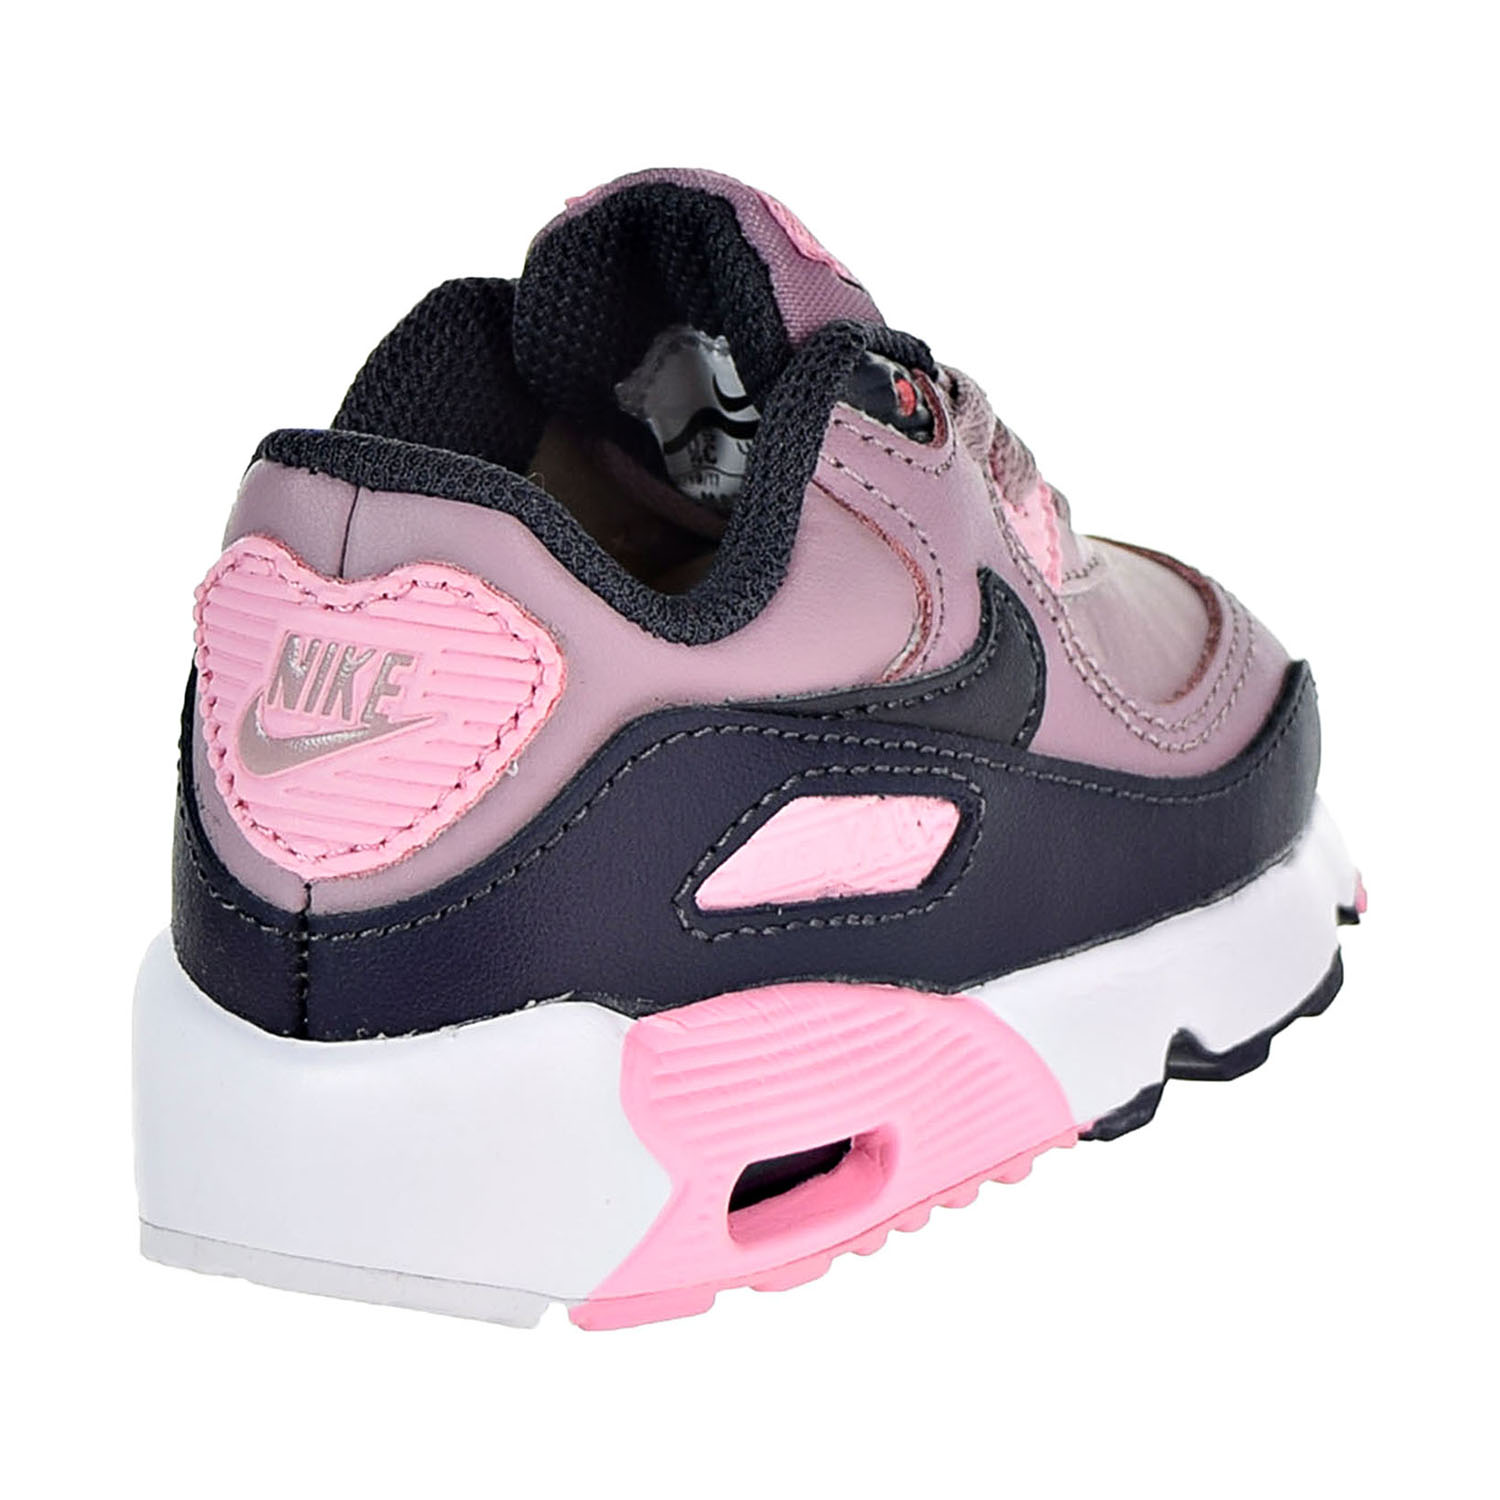 754f86d6b2a4e Details about Nike Air Max 90 Leather Toddler's Shoes Elemental Rose  833379-602